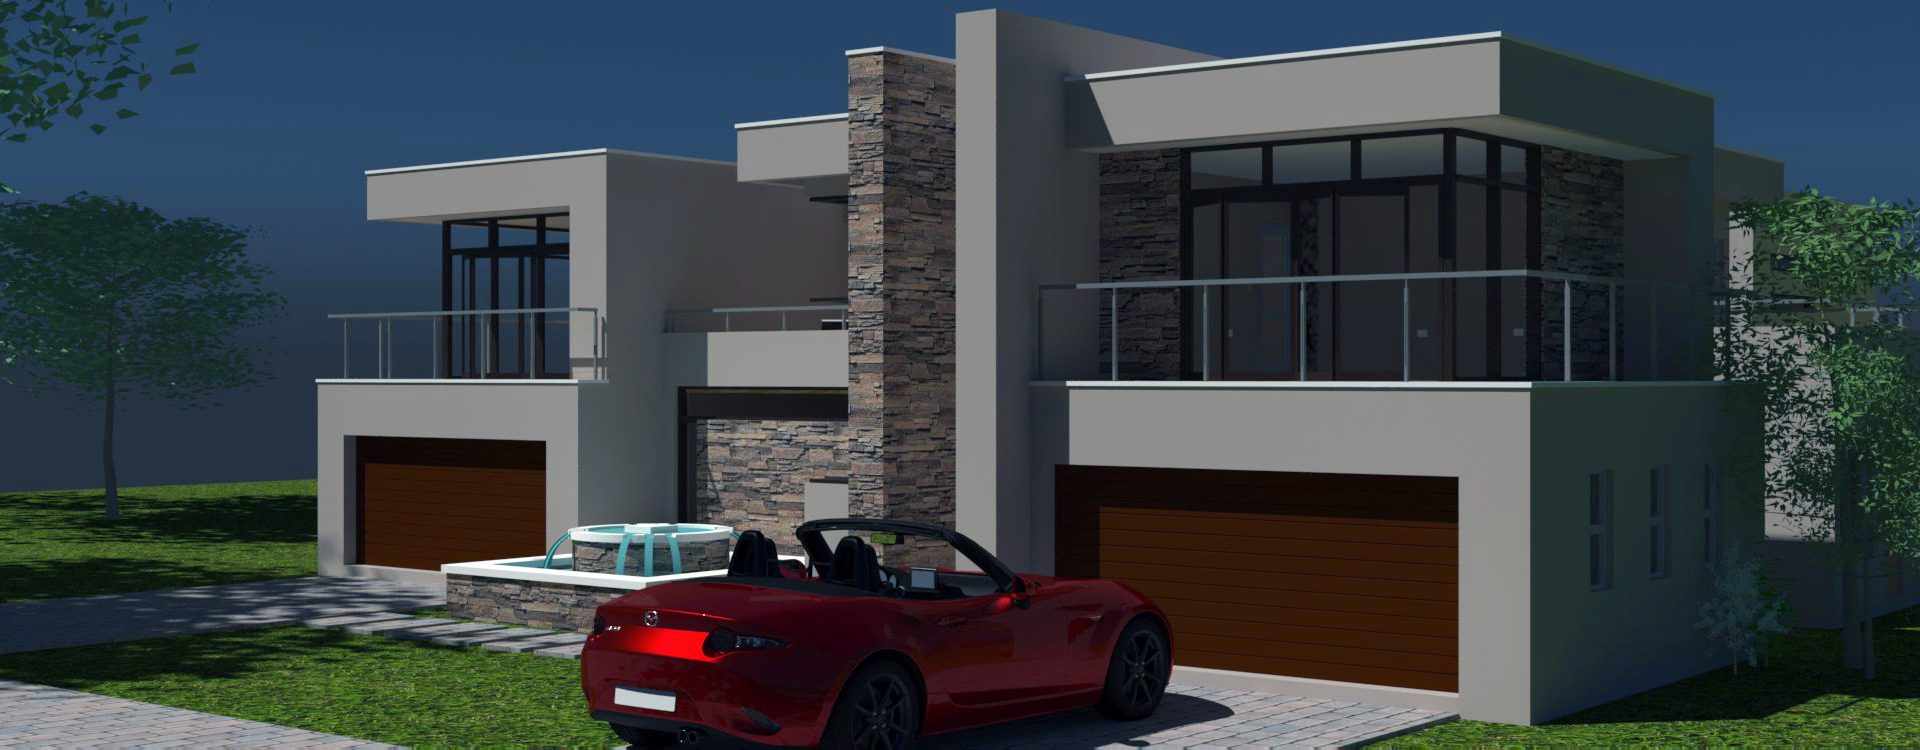 2 storey house design modern house plan 4 car garage house design contemporary